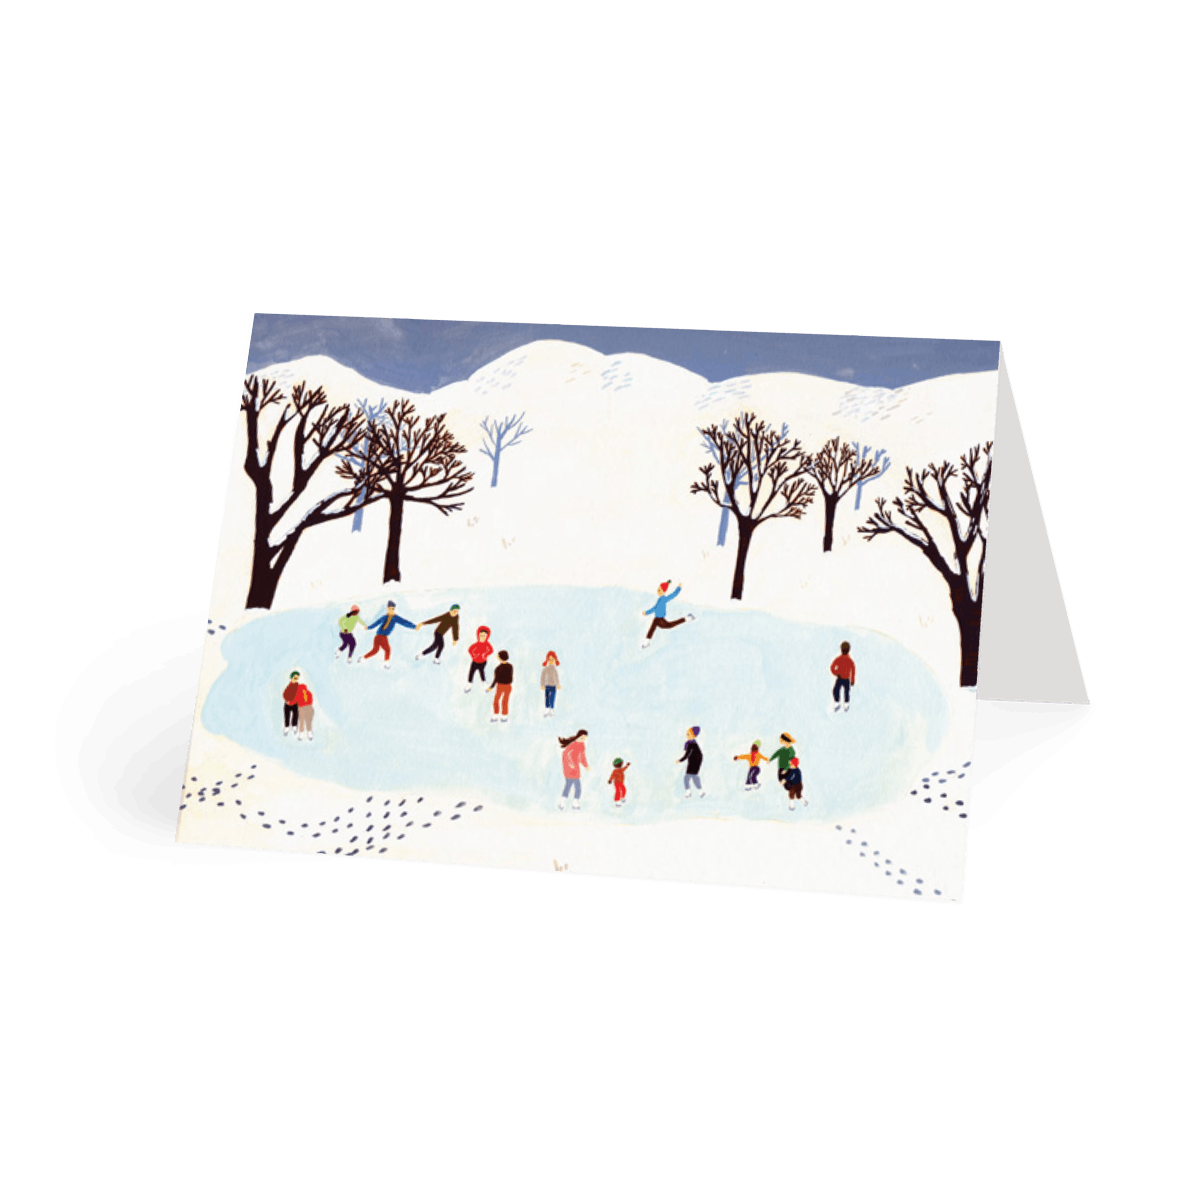 Https%3a%2f%2fwww.papier.com%2fproduct image%2f13190%2f14%2fice skaters 3346 front 1541416109.png?ixlib=rb 1.1